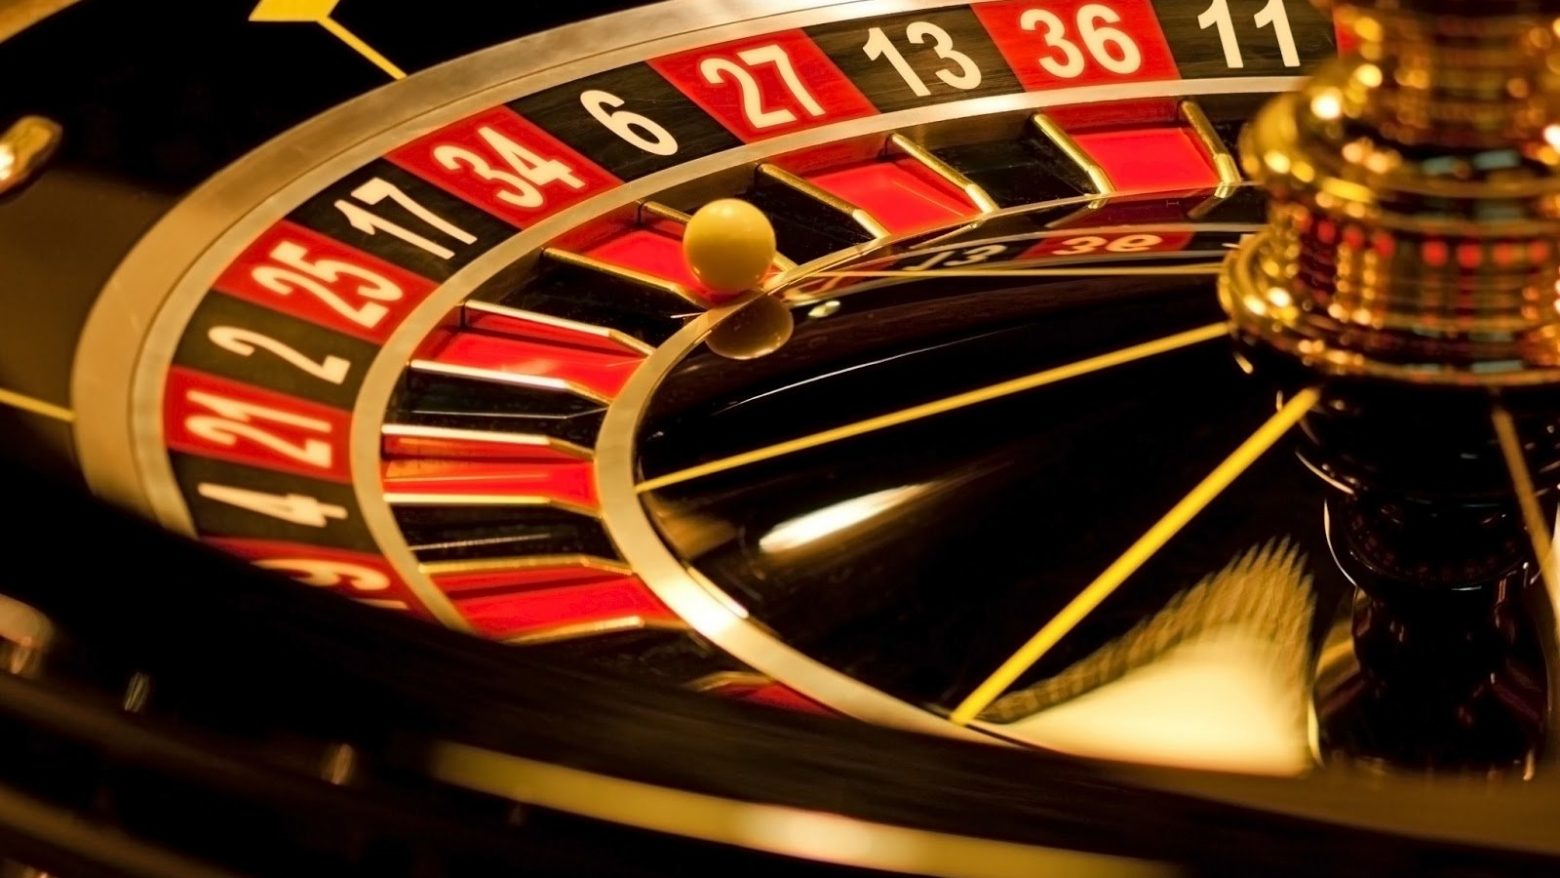 Unusual Article Uncovers The Deceptive Practices Of Online Gambling